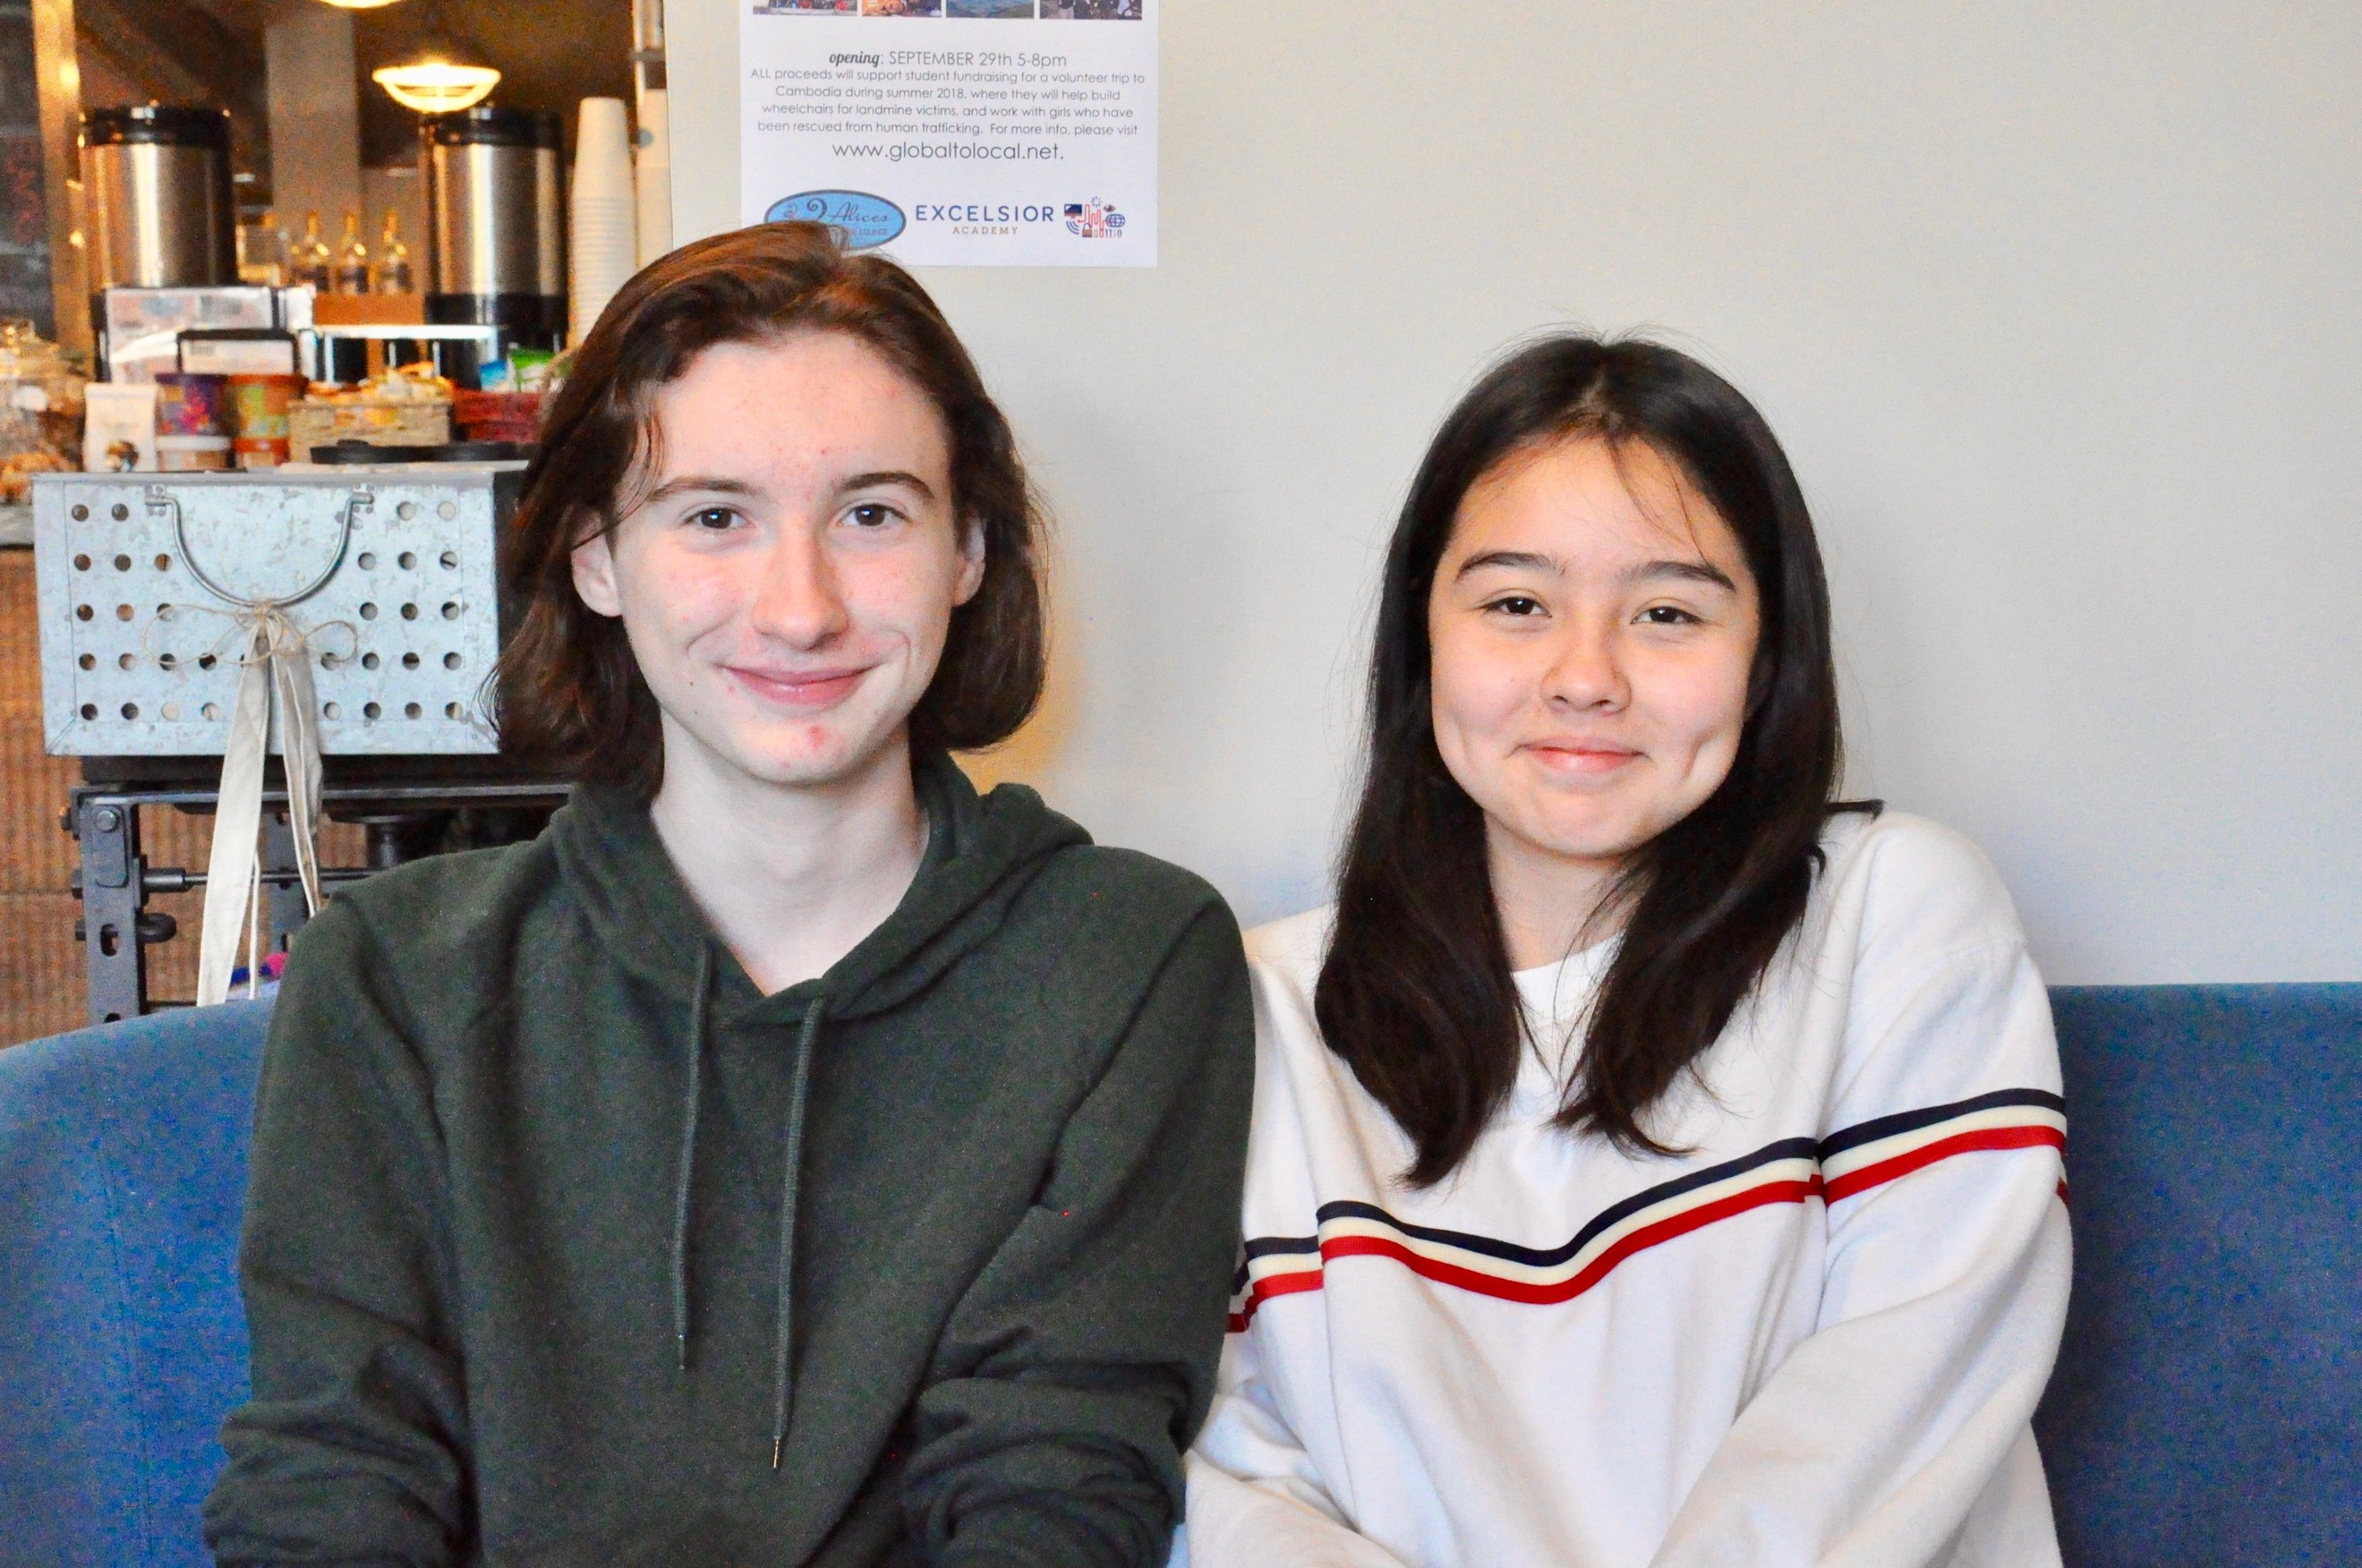 Students Brendin Skalel and Bariella Estrada